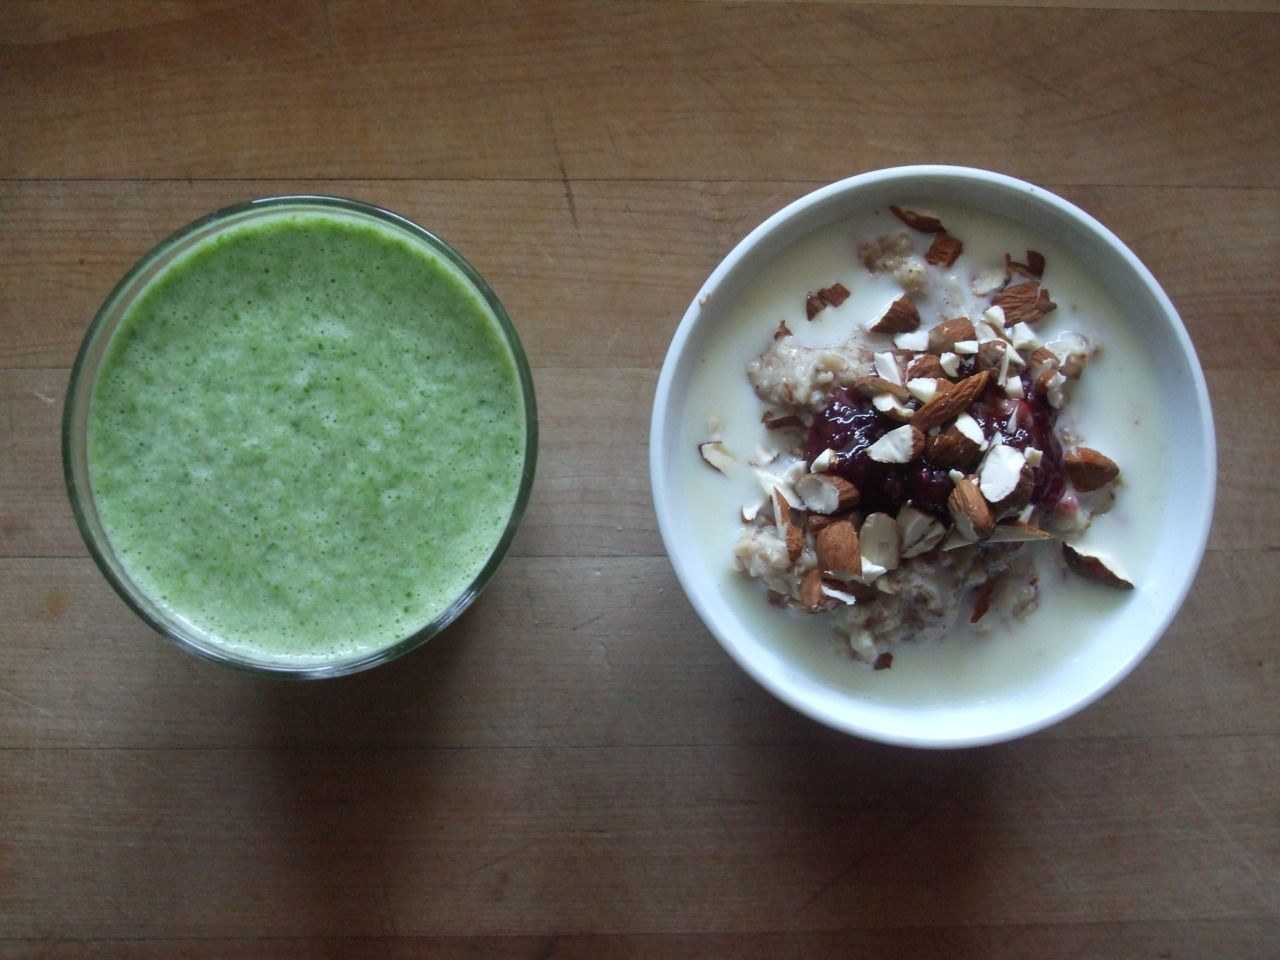 oatmeal with flax, soy milk, raspberry jam, and almonds, spinach smoothie with soy milk and cantaloupe